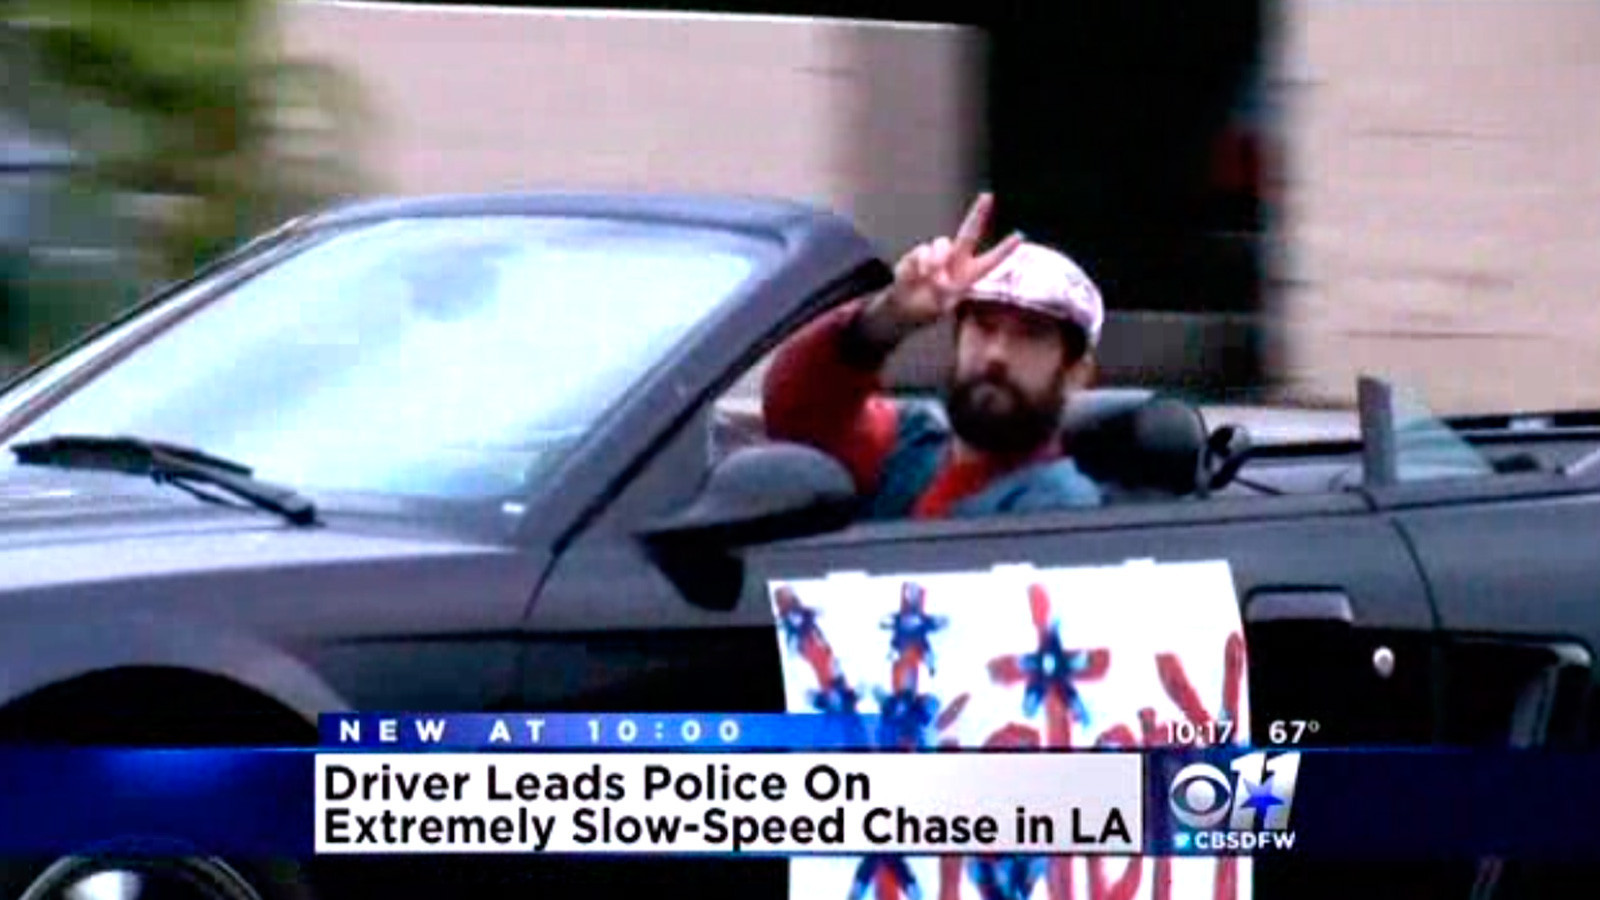 Victory parade' car chase ends when bystander blocks